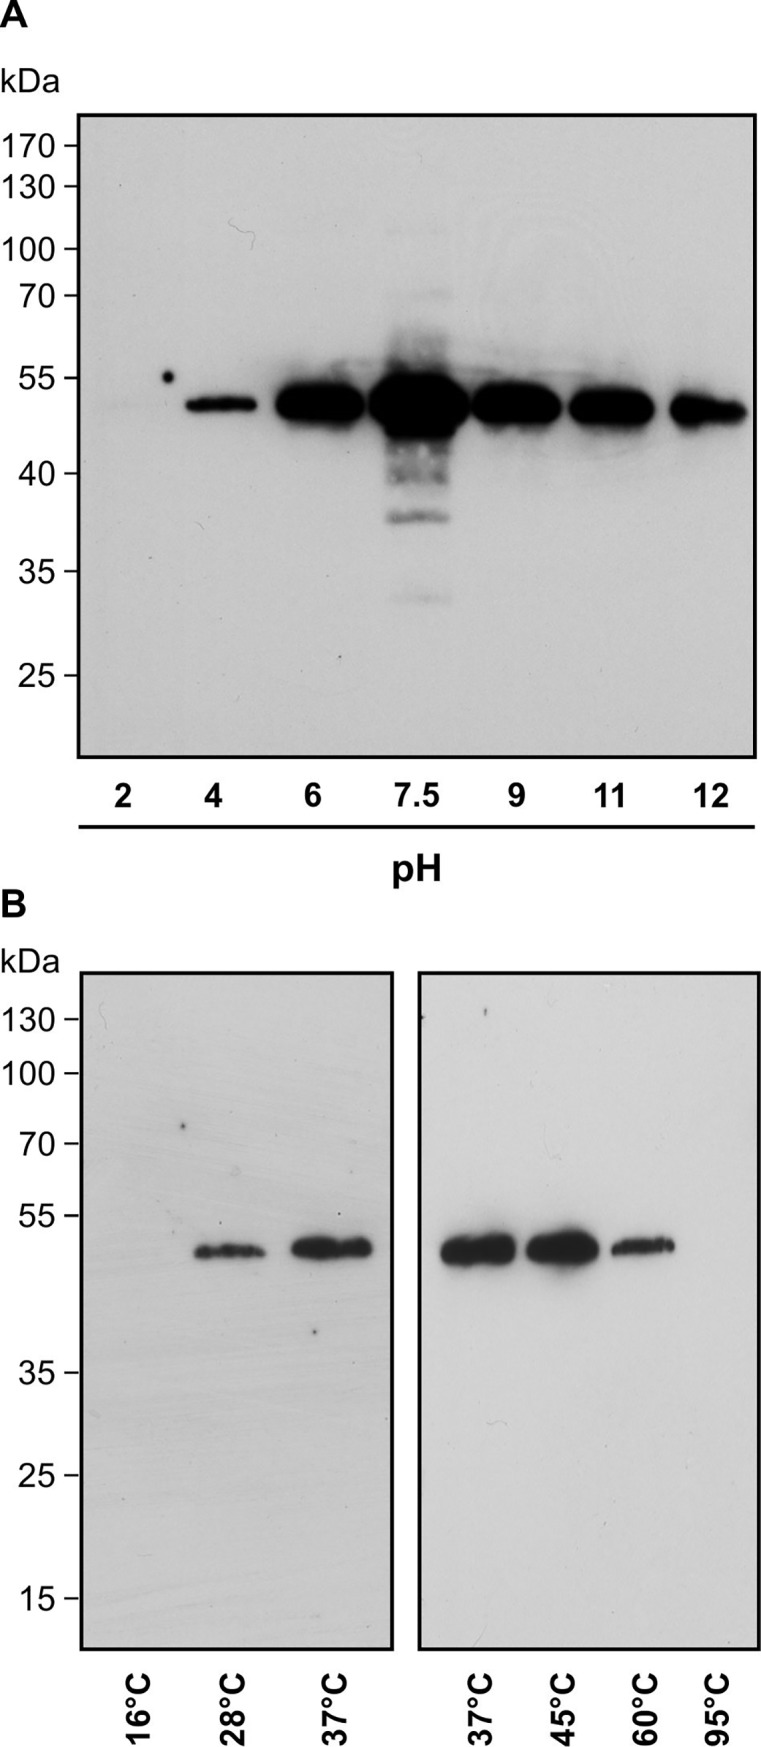 TGA2 modification by PGA 1 -biotin in vitro . Recombinant His-tagged TGA2 was incubated with 75 μM PGA 1 -biotin for 2 h. Proteins were separated on SDS-PAGE and transferred to a PVDF membrane. Biotinylated proteins were visualized by NeutrAvidin-HRP. (A) Stability of modification under different pH conditions tested at ambient temperature. (B) Incubation of TGA2 with PGA 1 -biotin in sodium phosphate, pH 7.5 at different temperatures. His-TGA2 has a predicted molecular weight of 42.3 kDa. The addition of six histidine residues may alter the migration slightly, resulting in a larger than expected protein band of ~50 kDa (Figs 2 and 3 ). Modification by PGA 1 -biotin would only add 0.6 kDa if a single site was modified. Immunoblot analysis with an αTGA2 antibody [ 22 ] confirmed the identity of His-TGA2 at 50 kDa (data not shown).